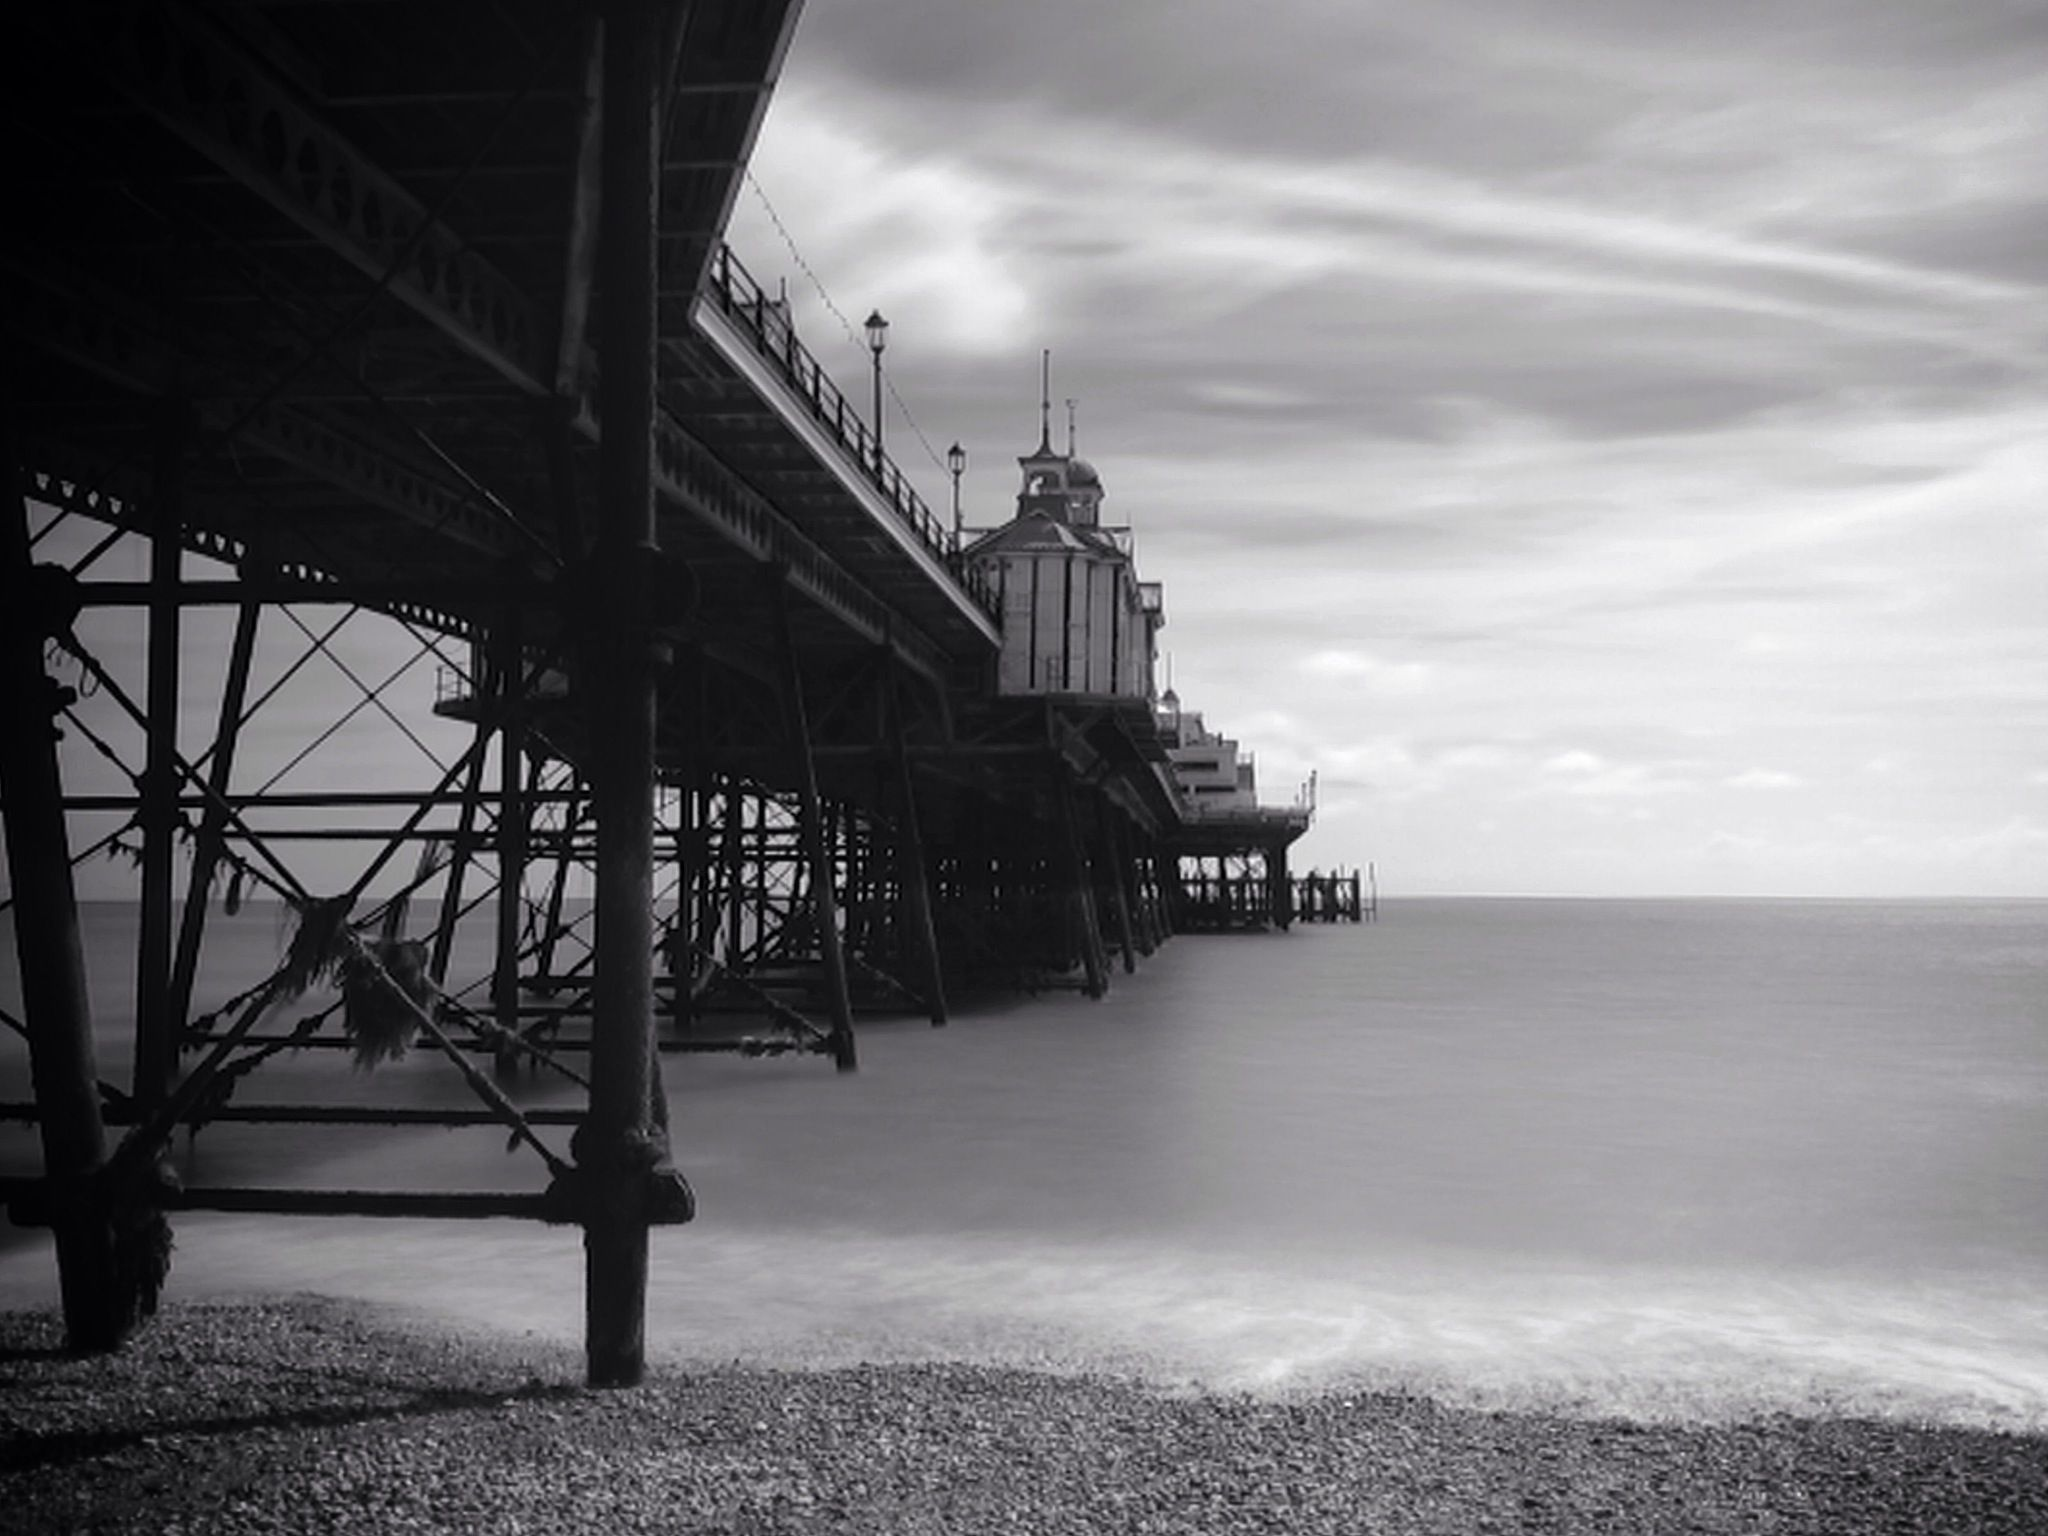 How to Take a Long Exposure Photograph on an iPhone